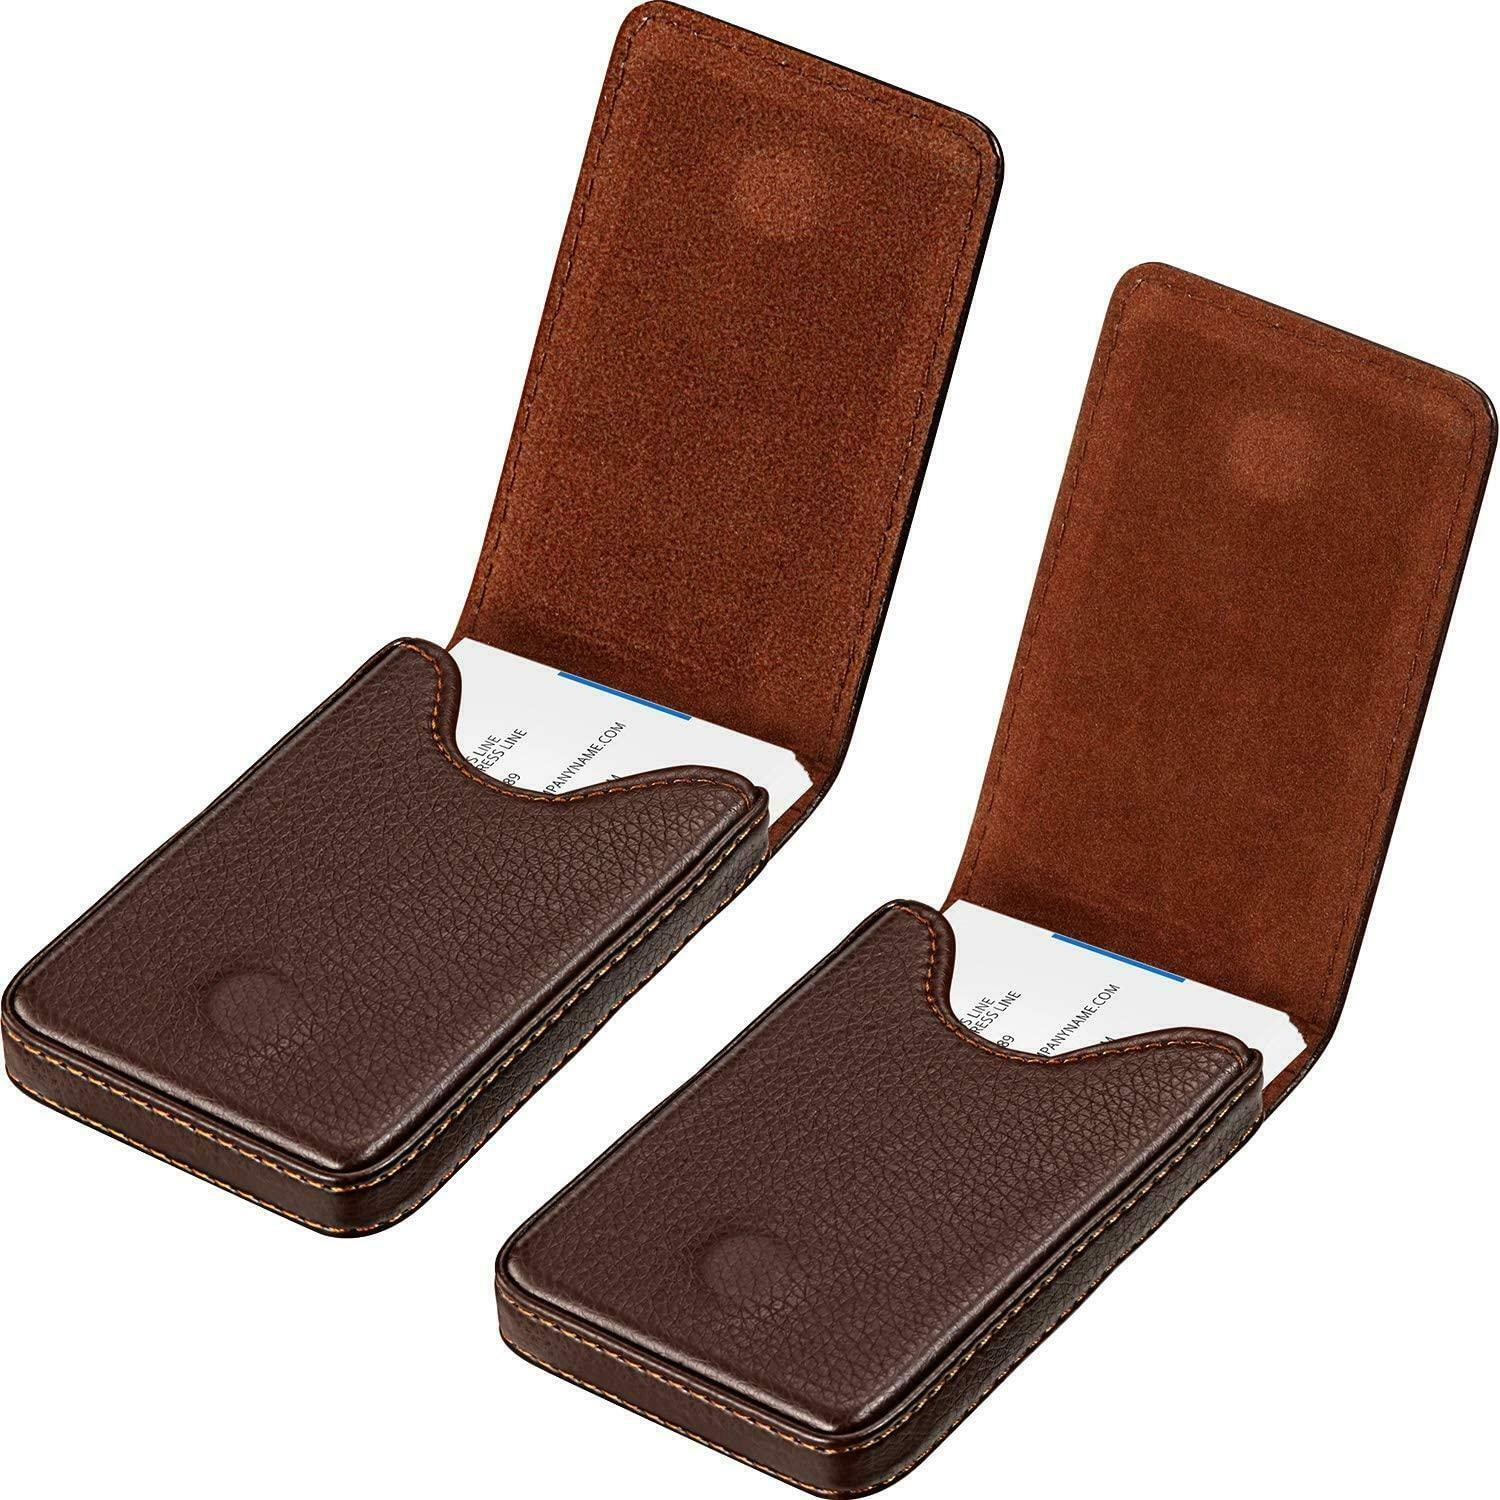 2 Pieces Business Card Holder, Wallet PU Leather Case Pocket Name With Magnetic